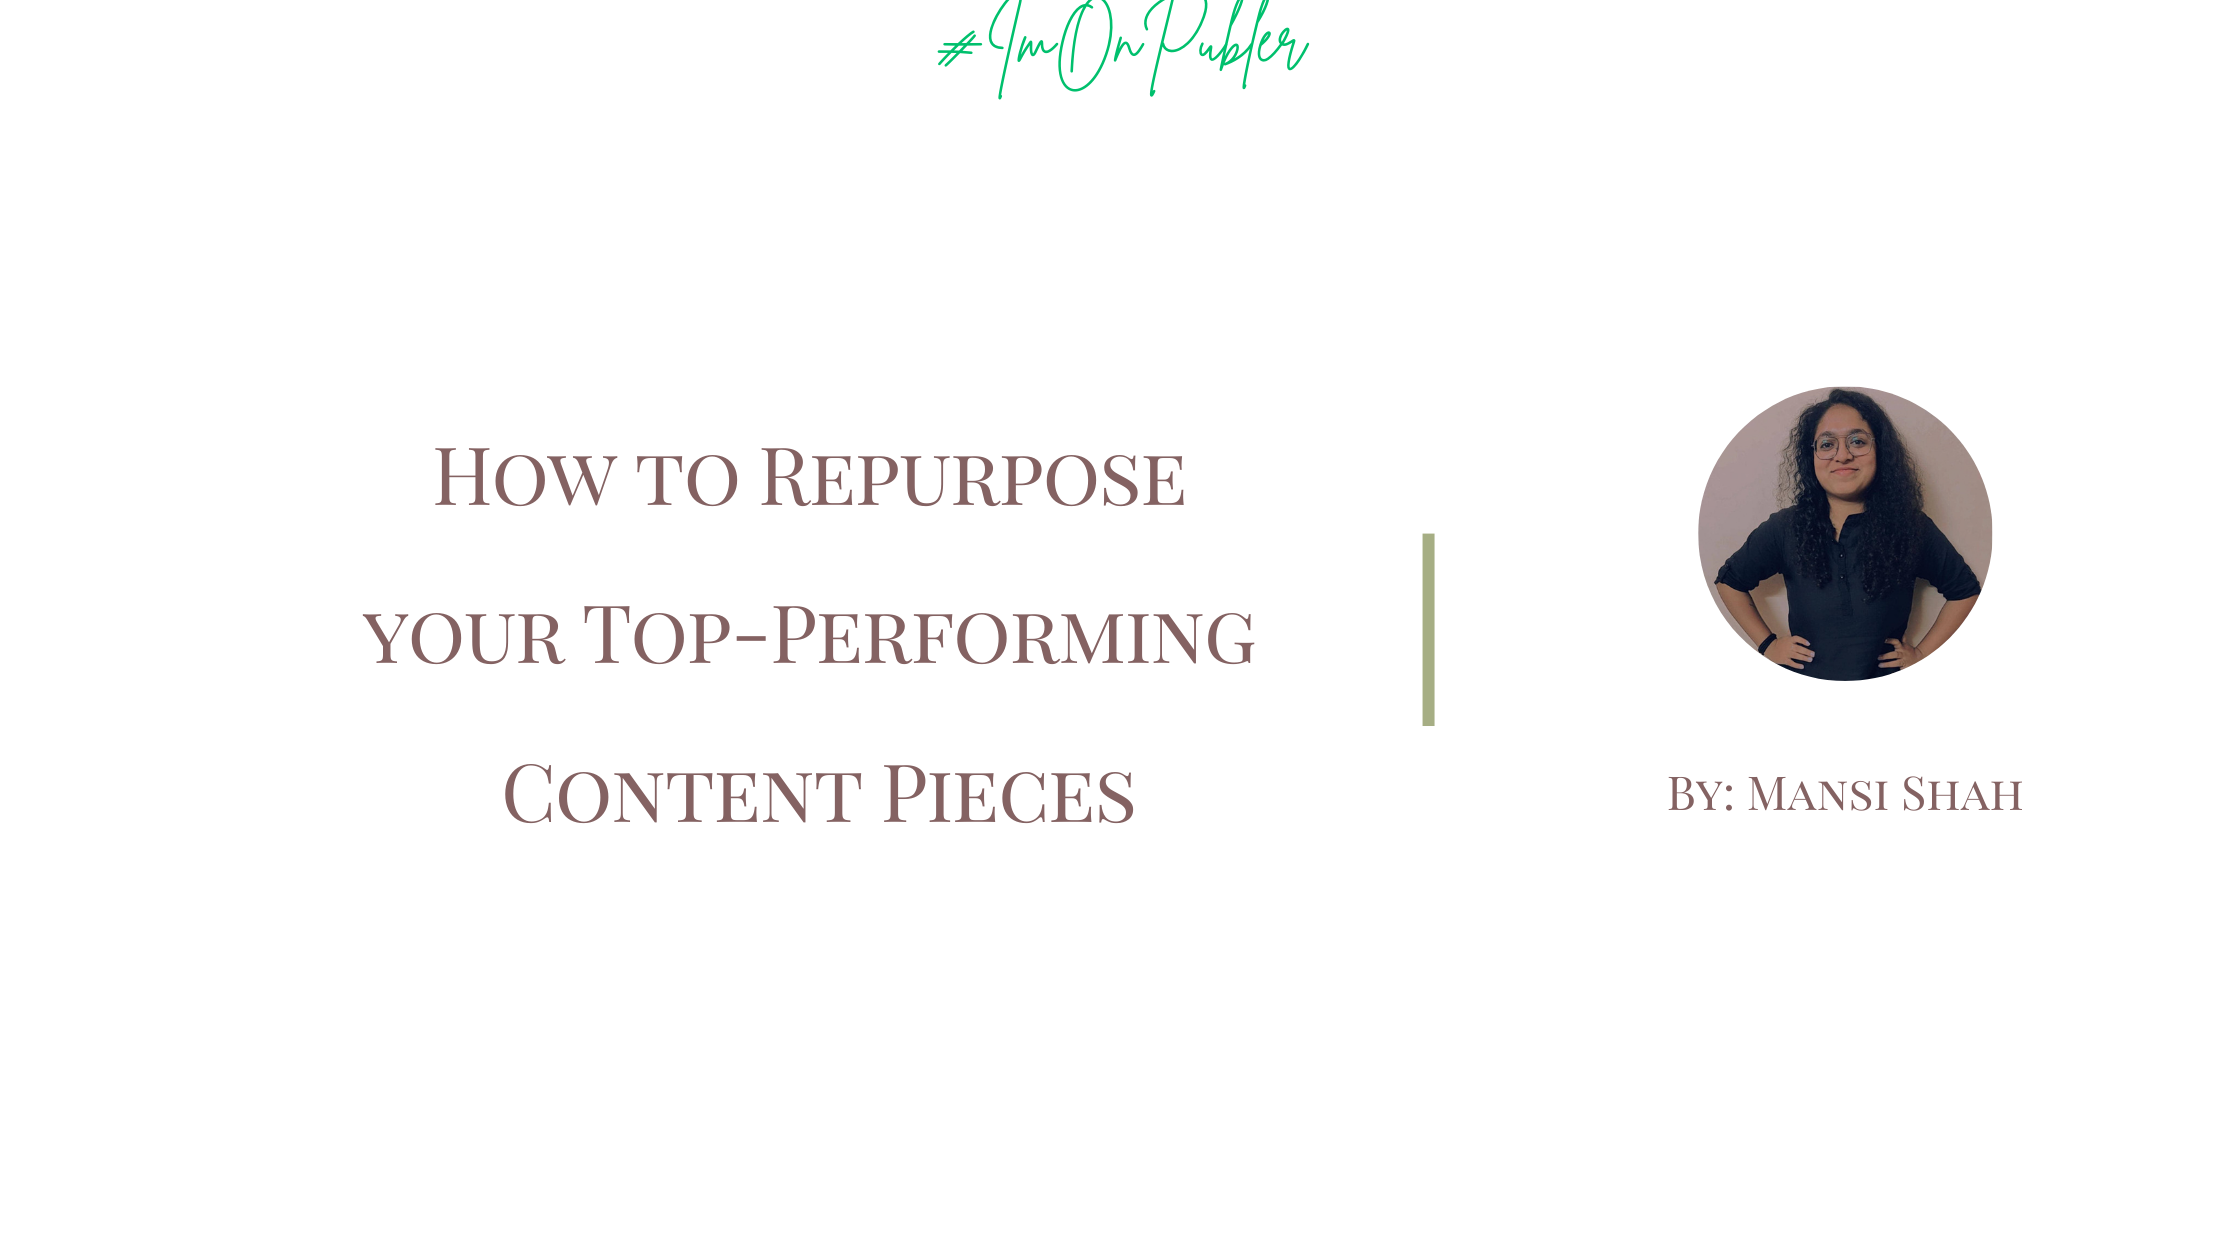 How to Repurpose your Top-Performing Content Pieces by Mansi Shah